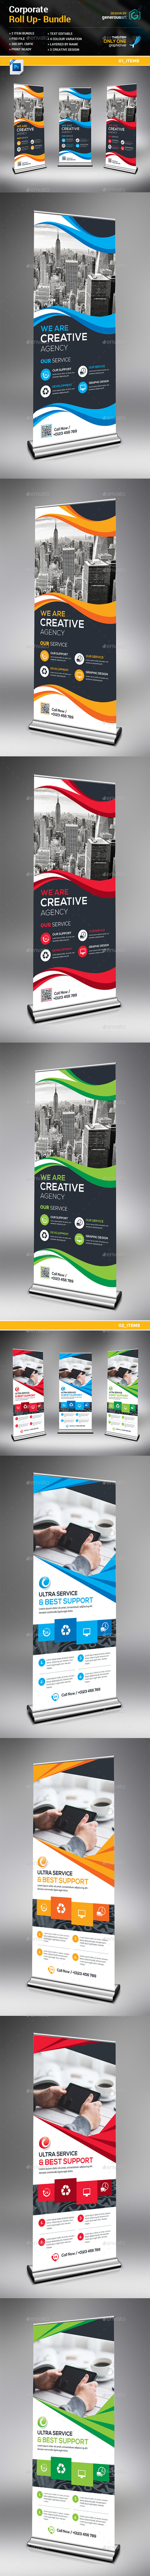 Roll-Up Banner Bundle_2 in 1 - Signage Print Templates